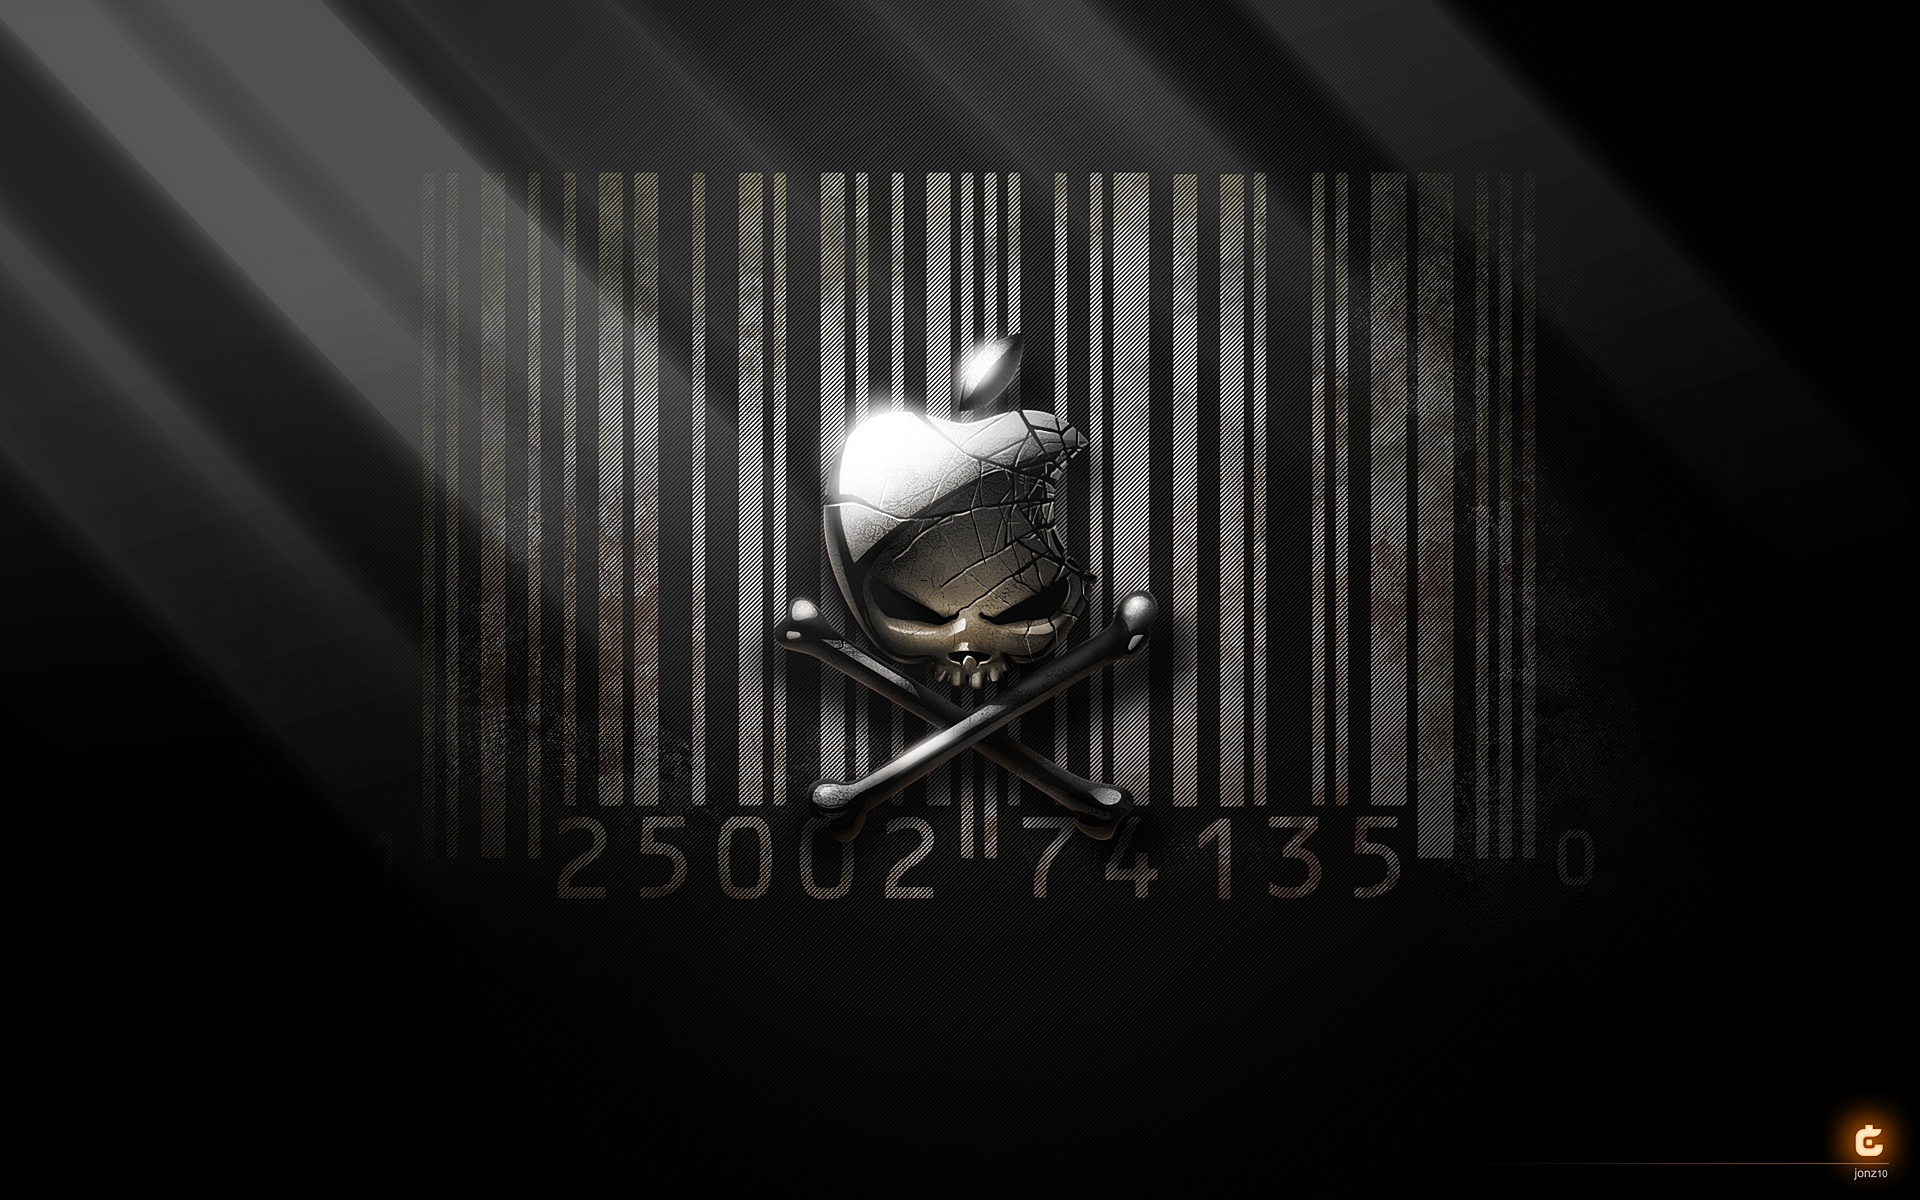 Hackintosh v5 Barcode by Jonzy